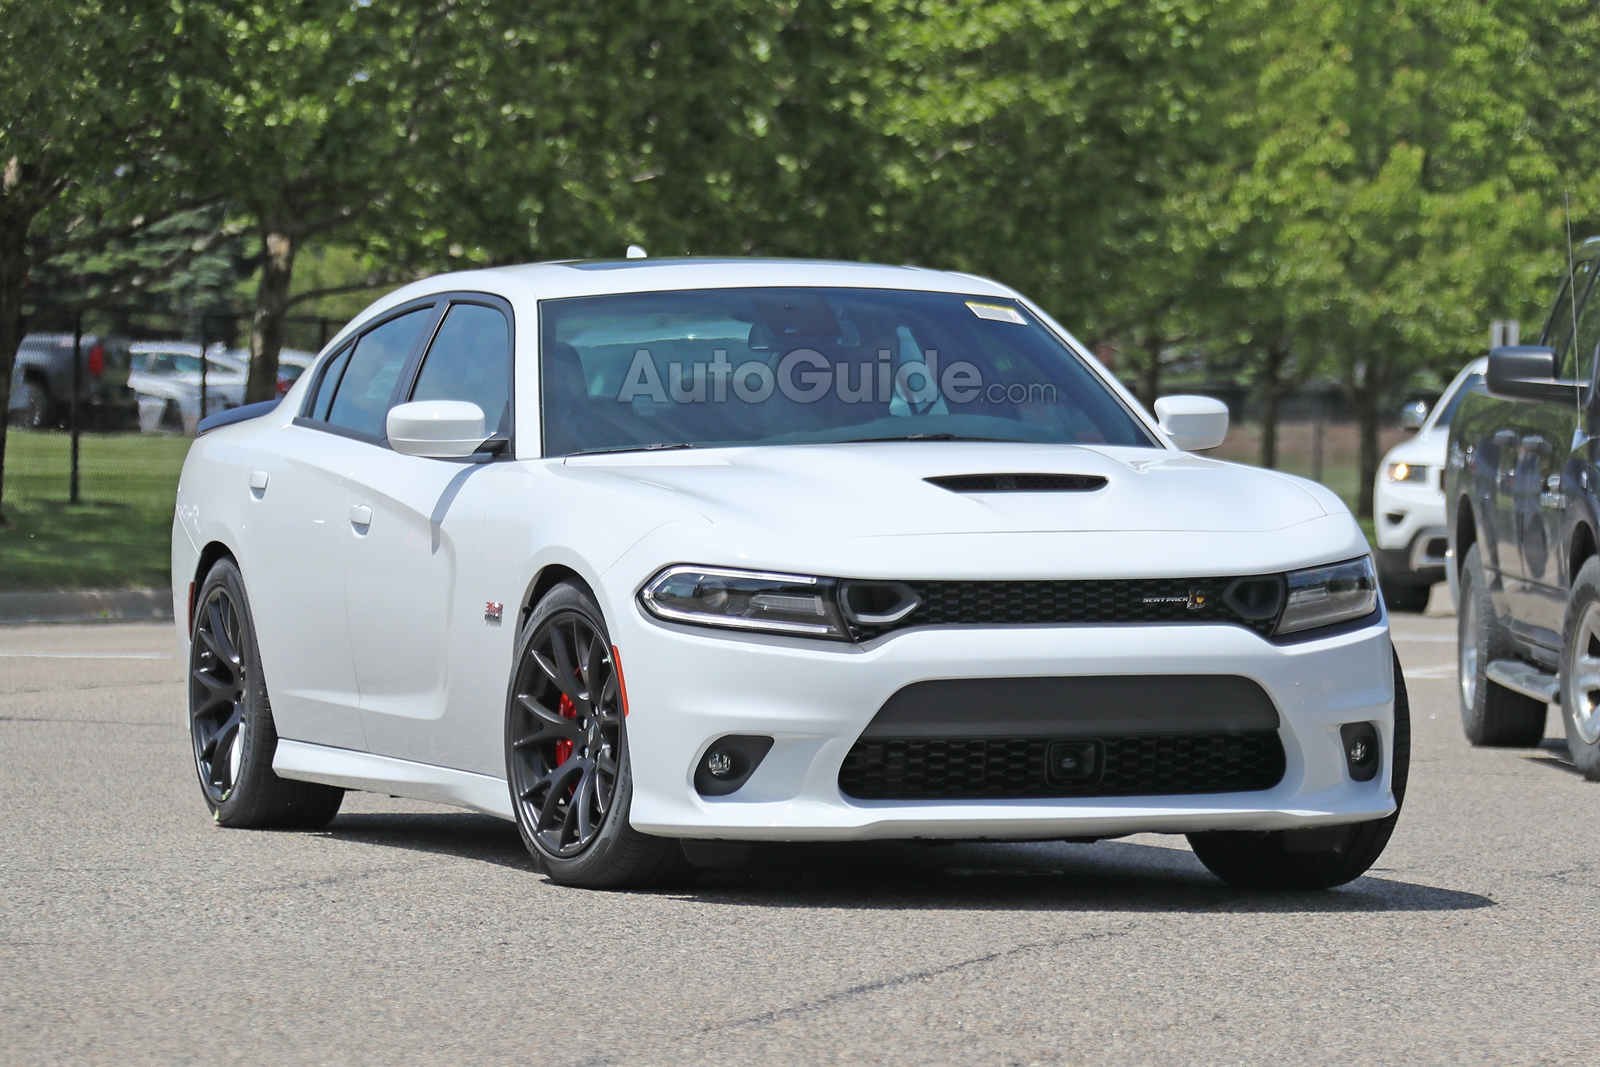 2019 dodge charger scat pack revealed in new spy photos news. Black Bedroom Furniture Sets. Home Design Ideas